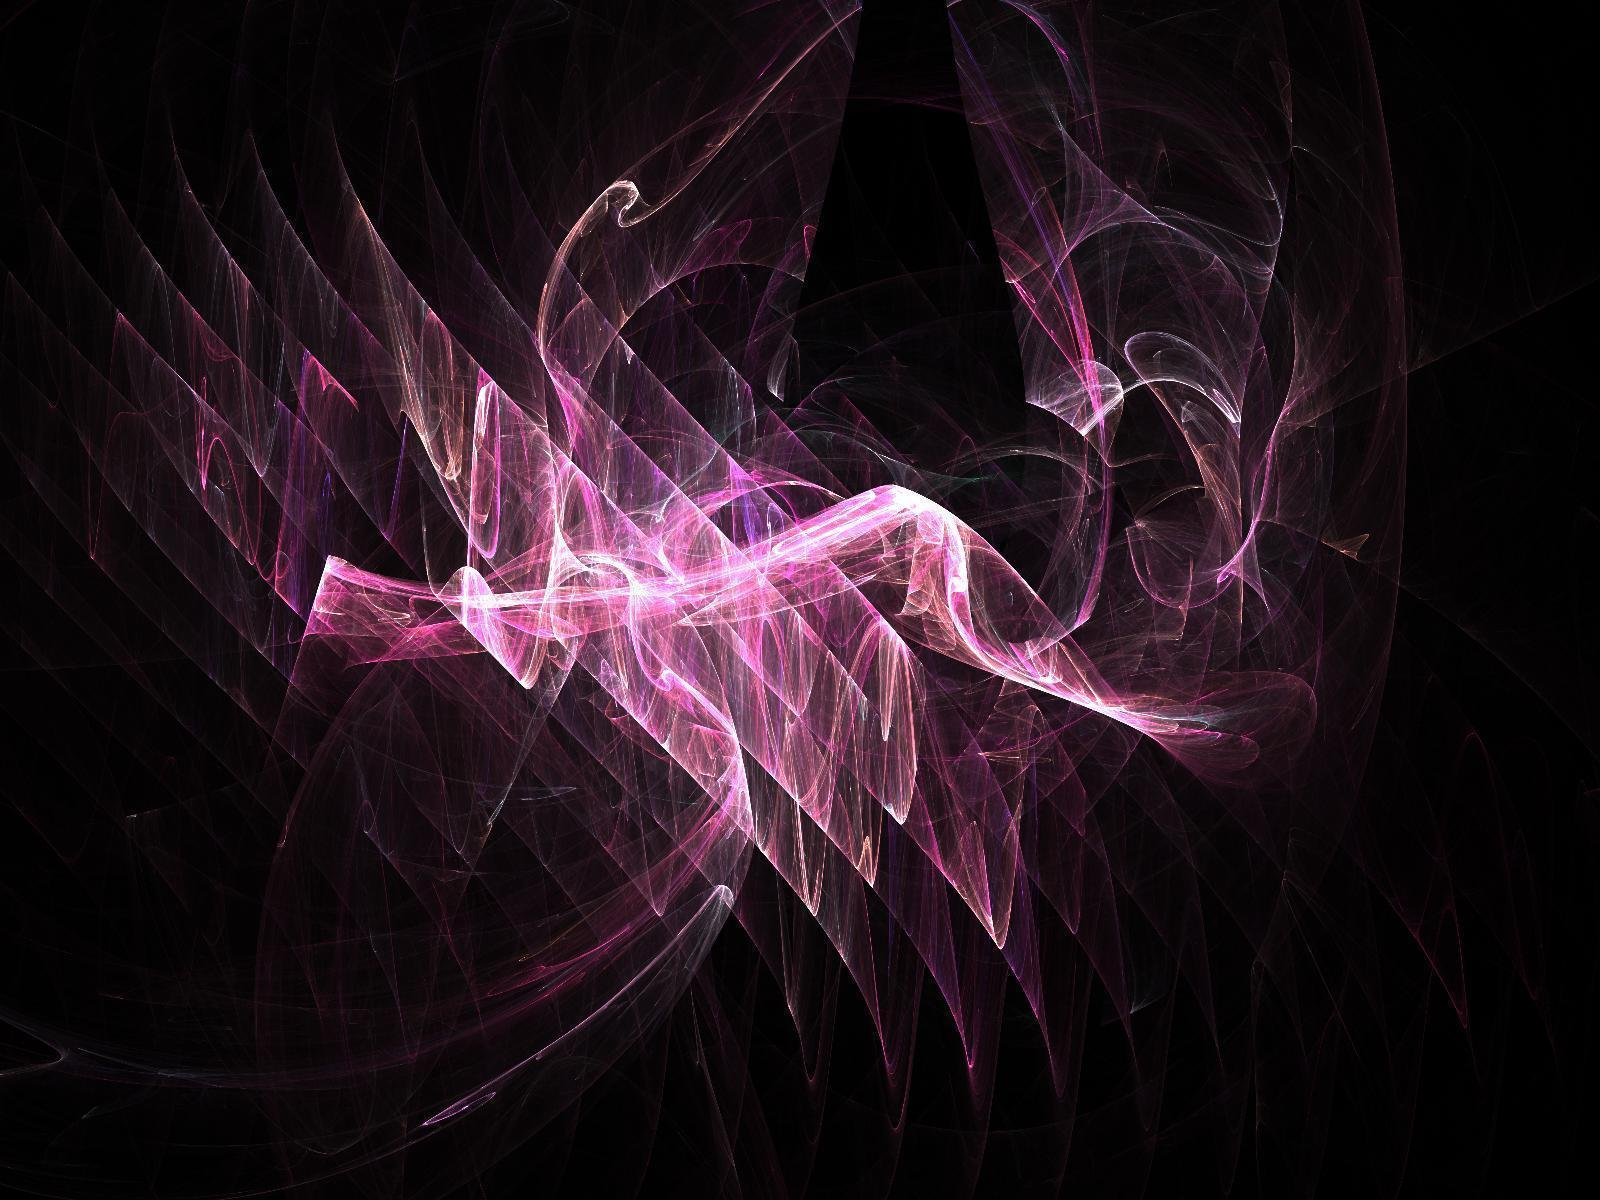 Pink And Black Backgrounds - Wallpaper Cave  Pink And Black ...